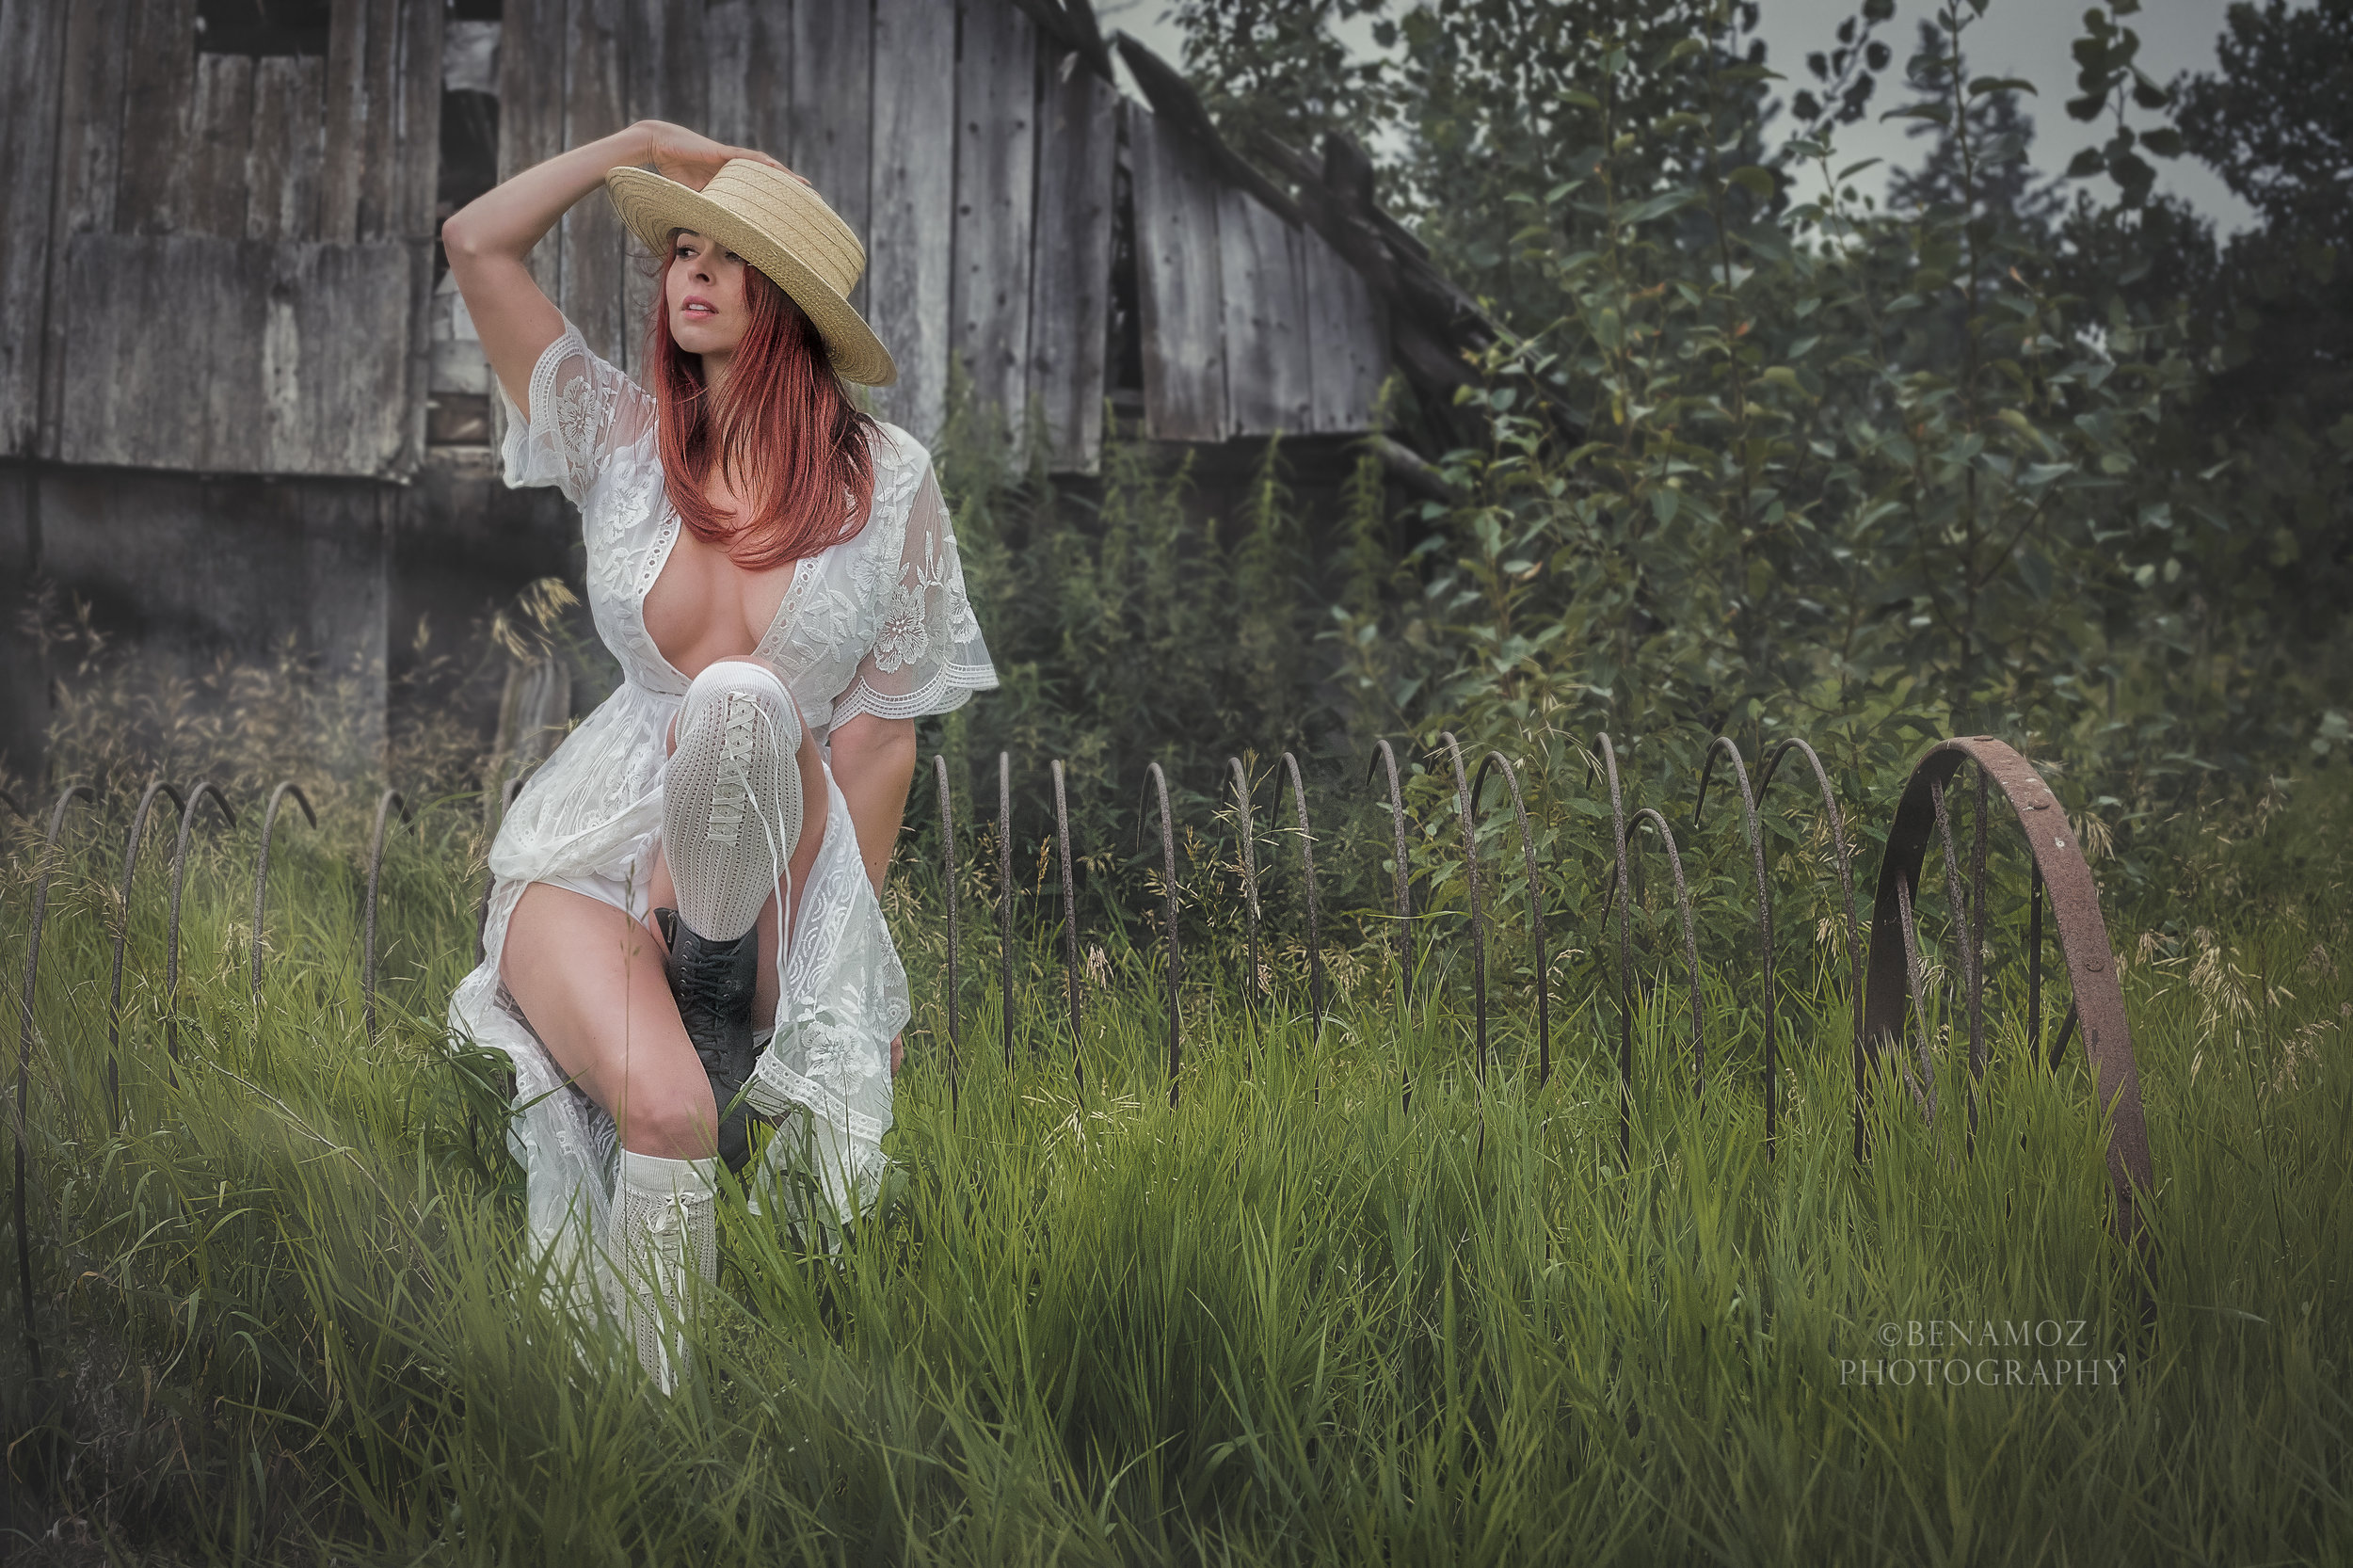 Our actor/model wanted a more alluring look with a mix of rustic. She pulled this off quite nicely!